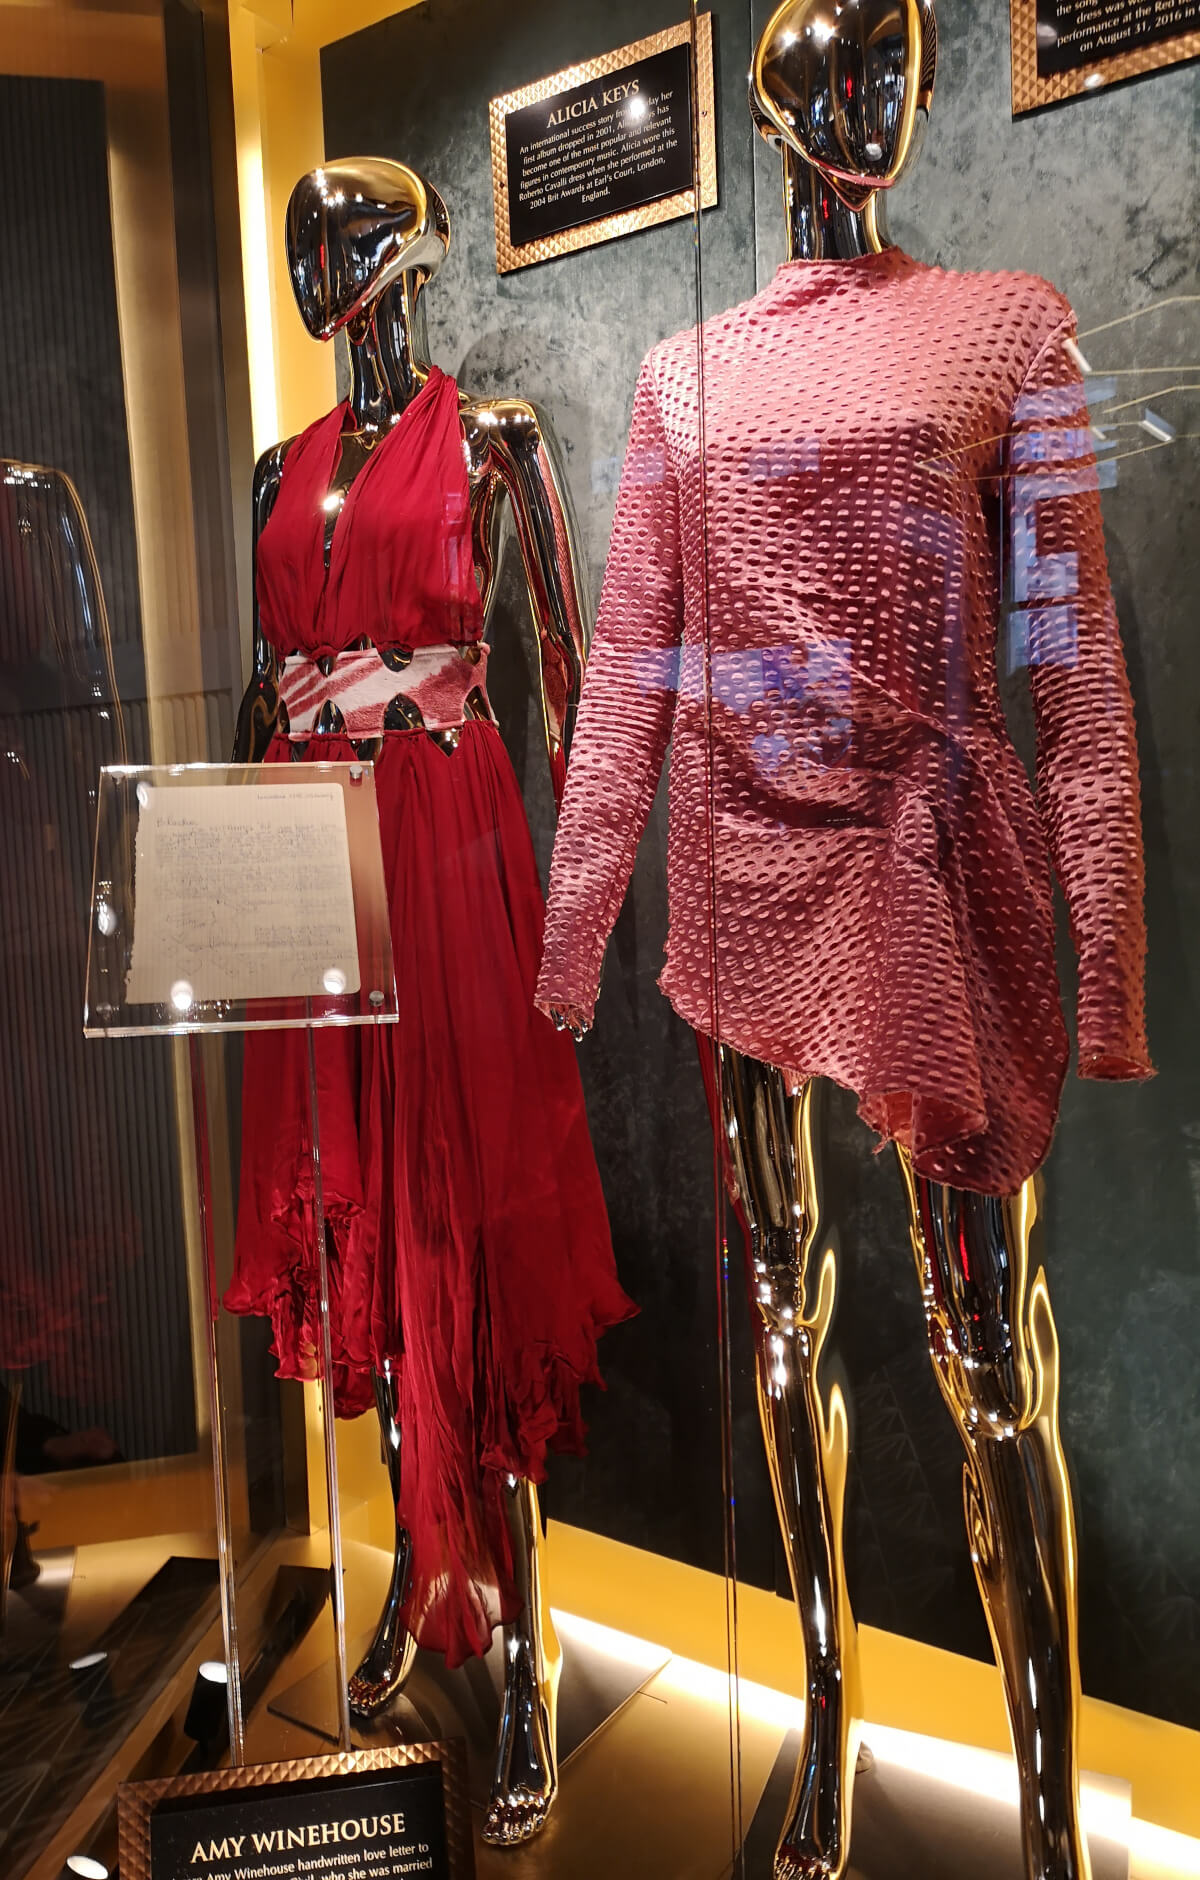 Amy Winehouse love letter and dresses from Alicia Keys